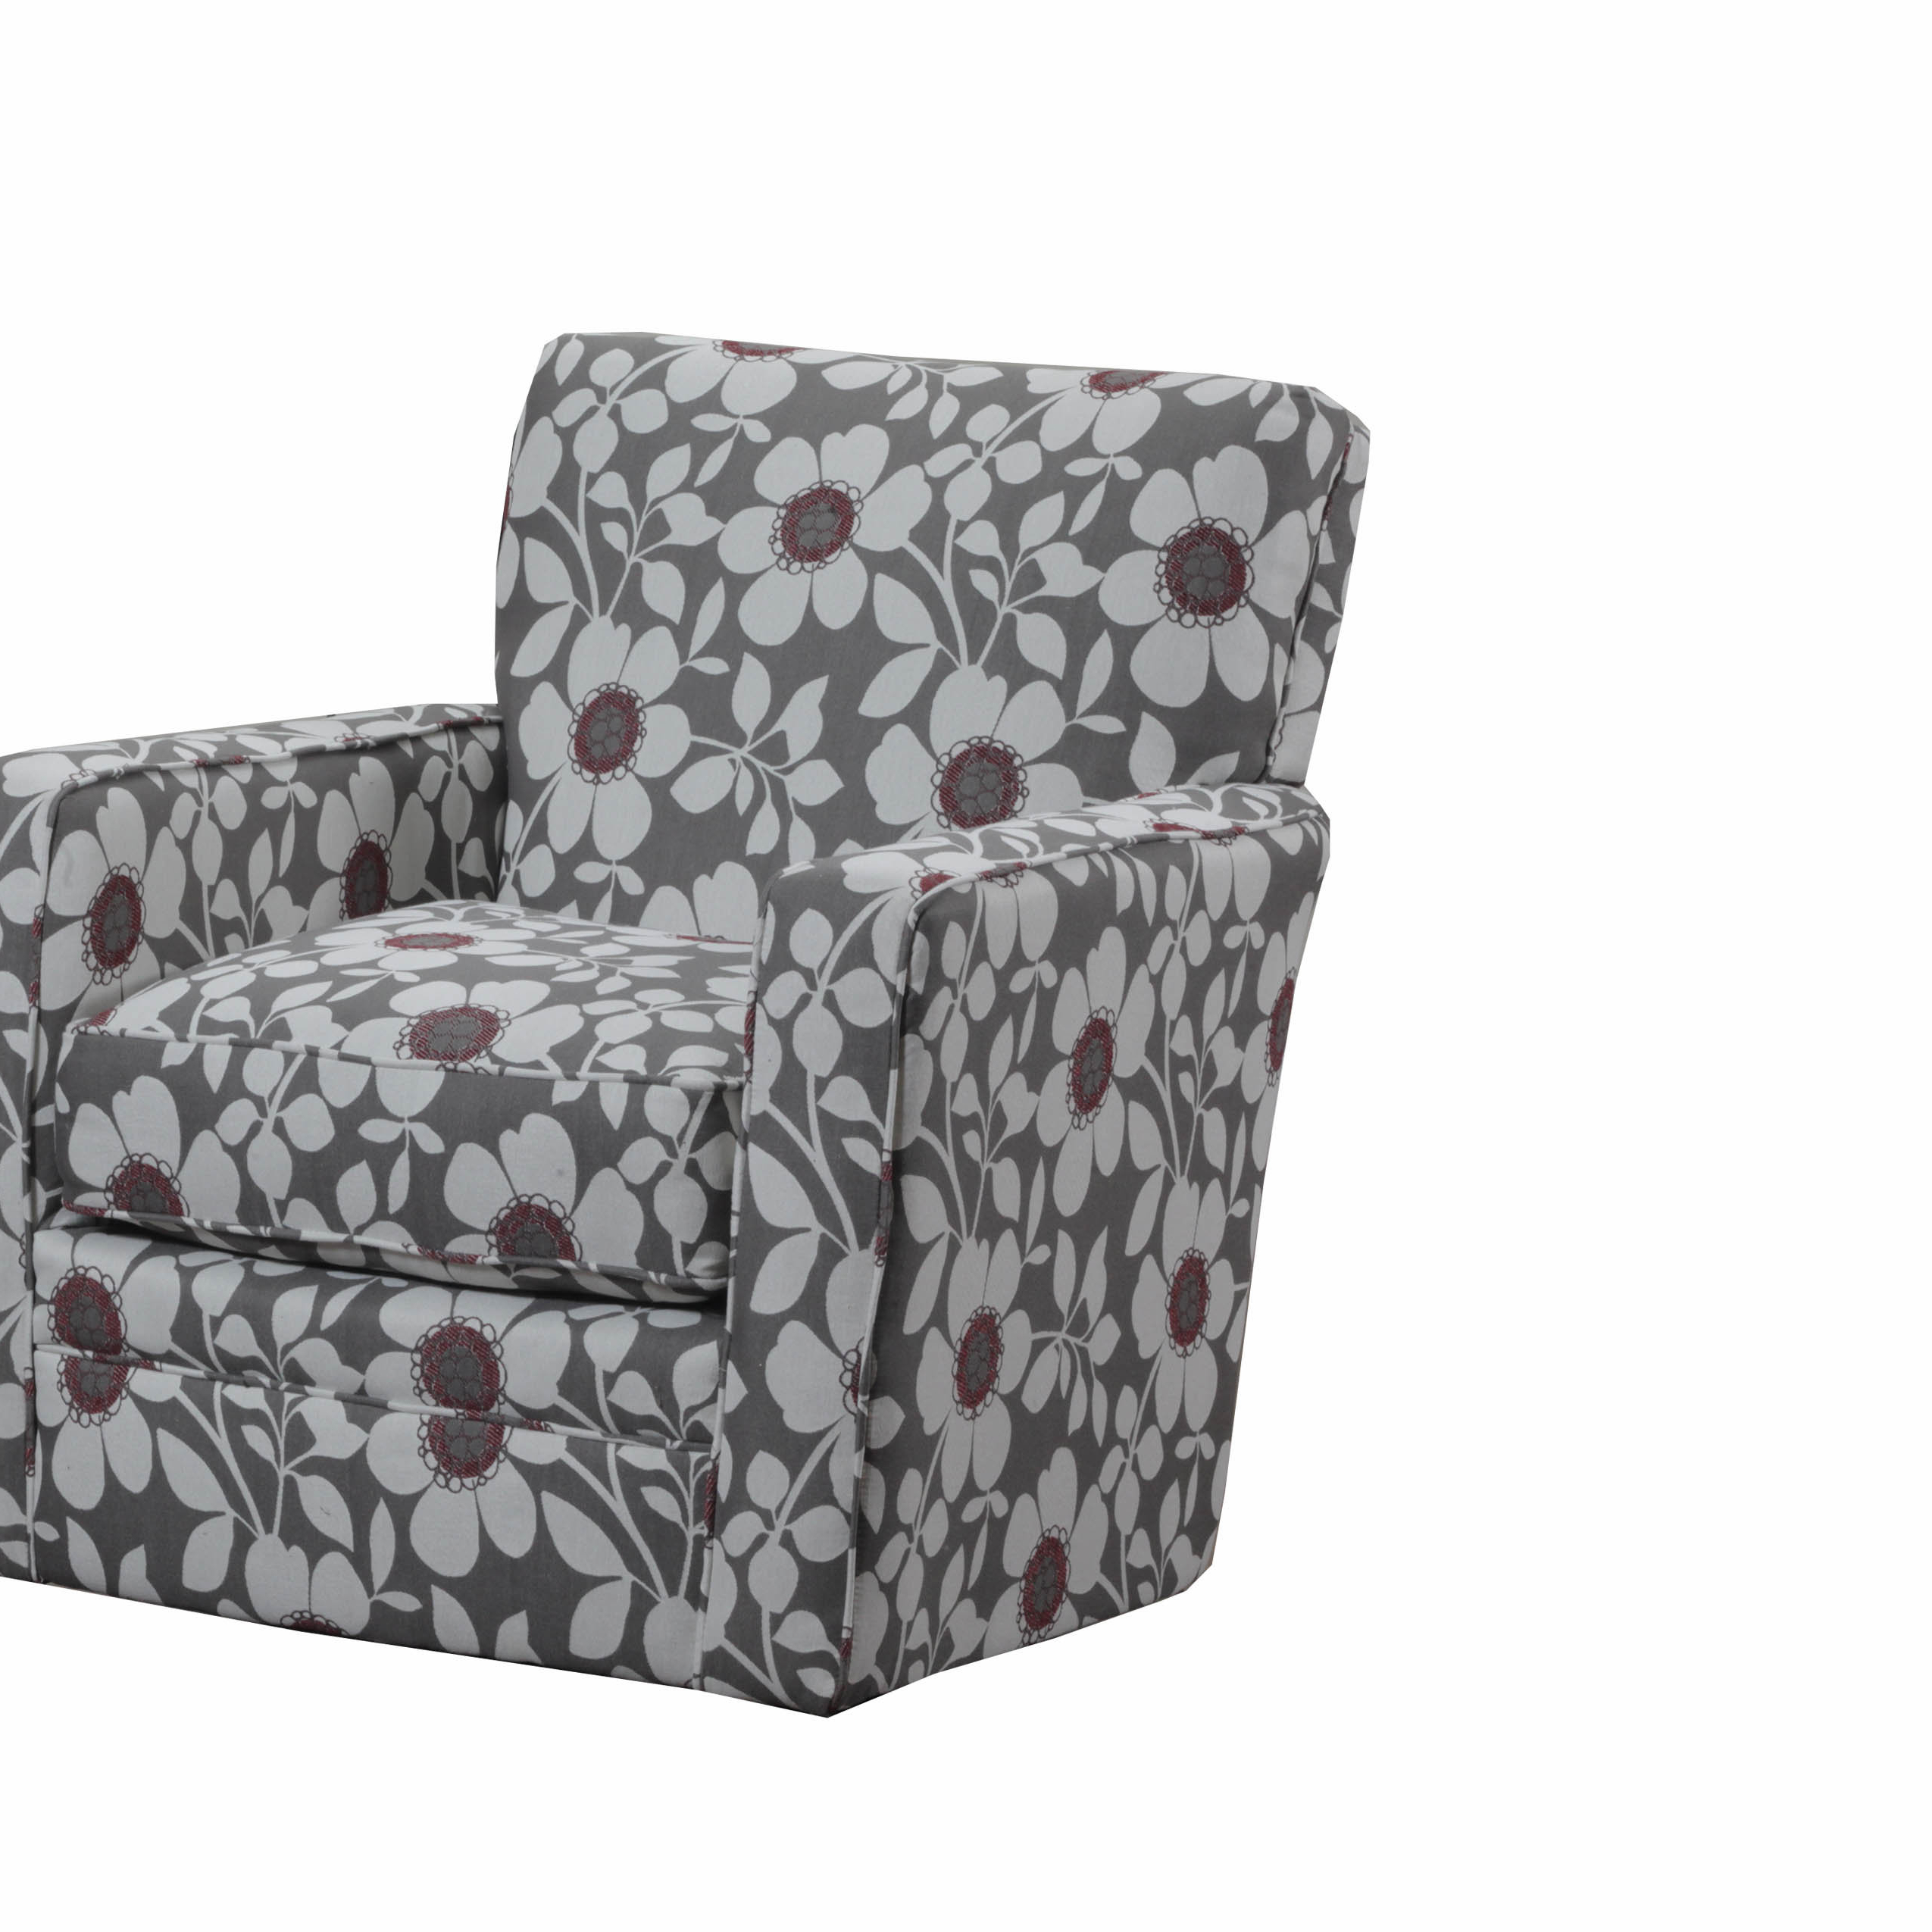 Latitude Run Simmons Upholstery Katrina Swivel Glider & Reviews For 2019 Katrina Beige Swivel Glider Chairs (View 3 of 20)